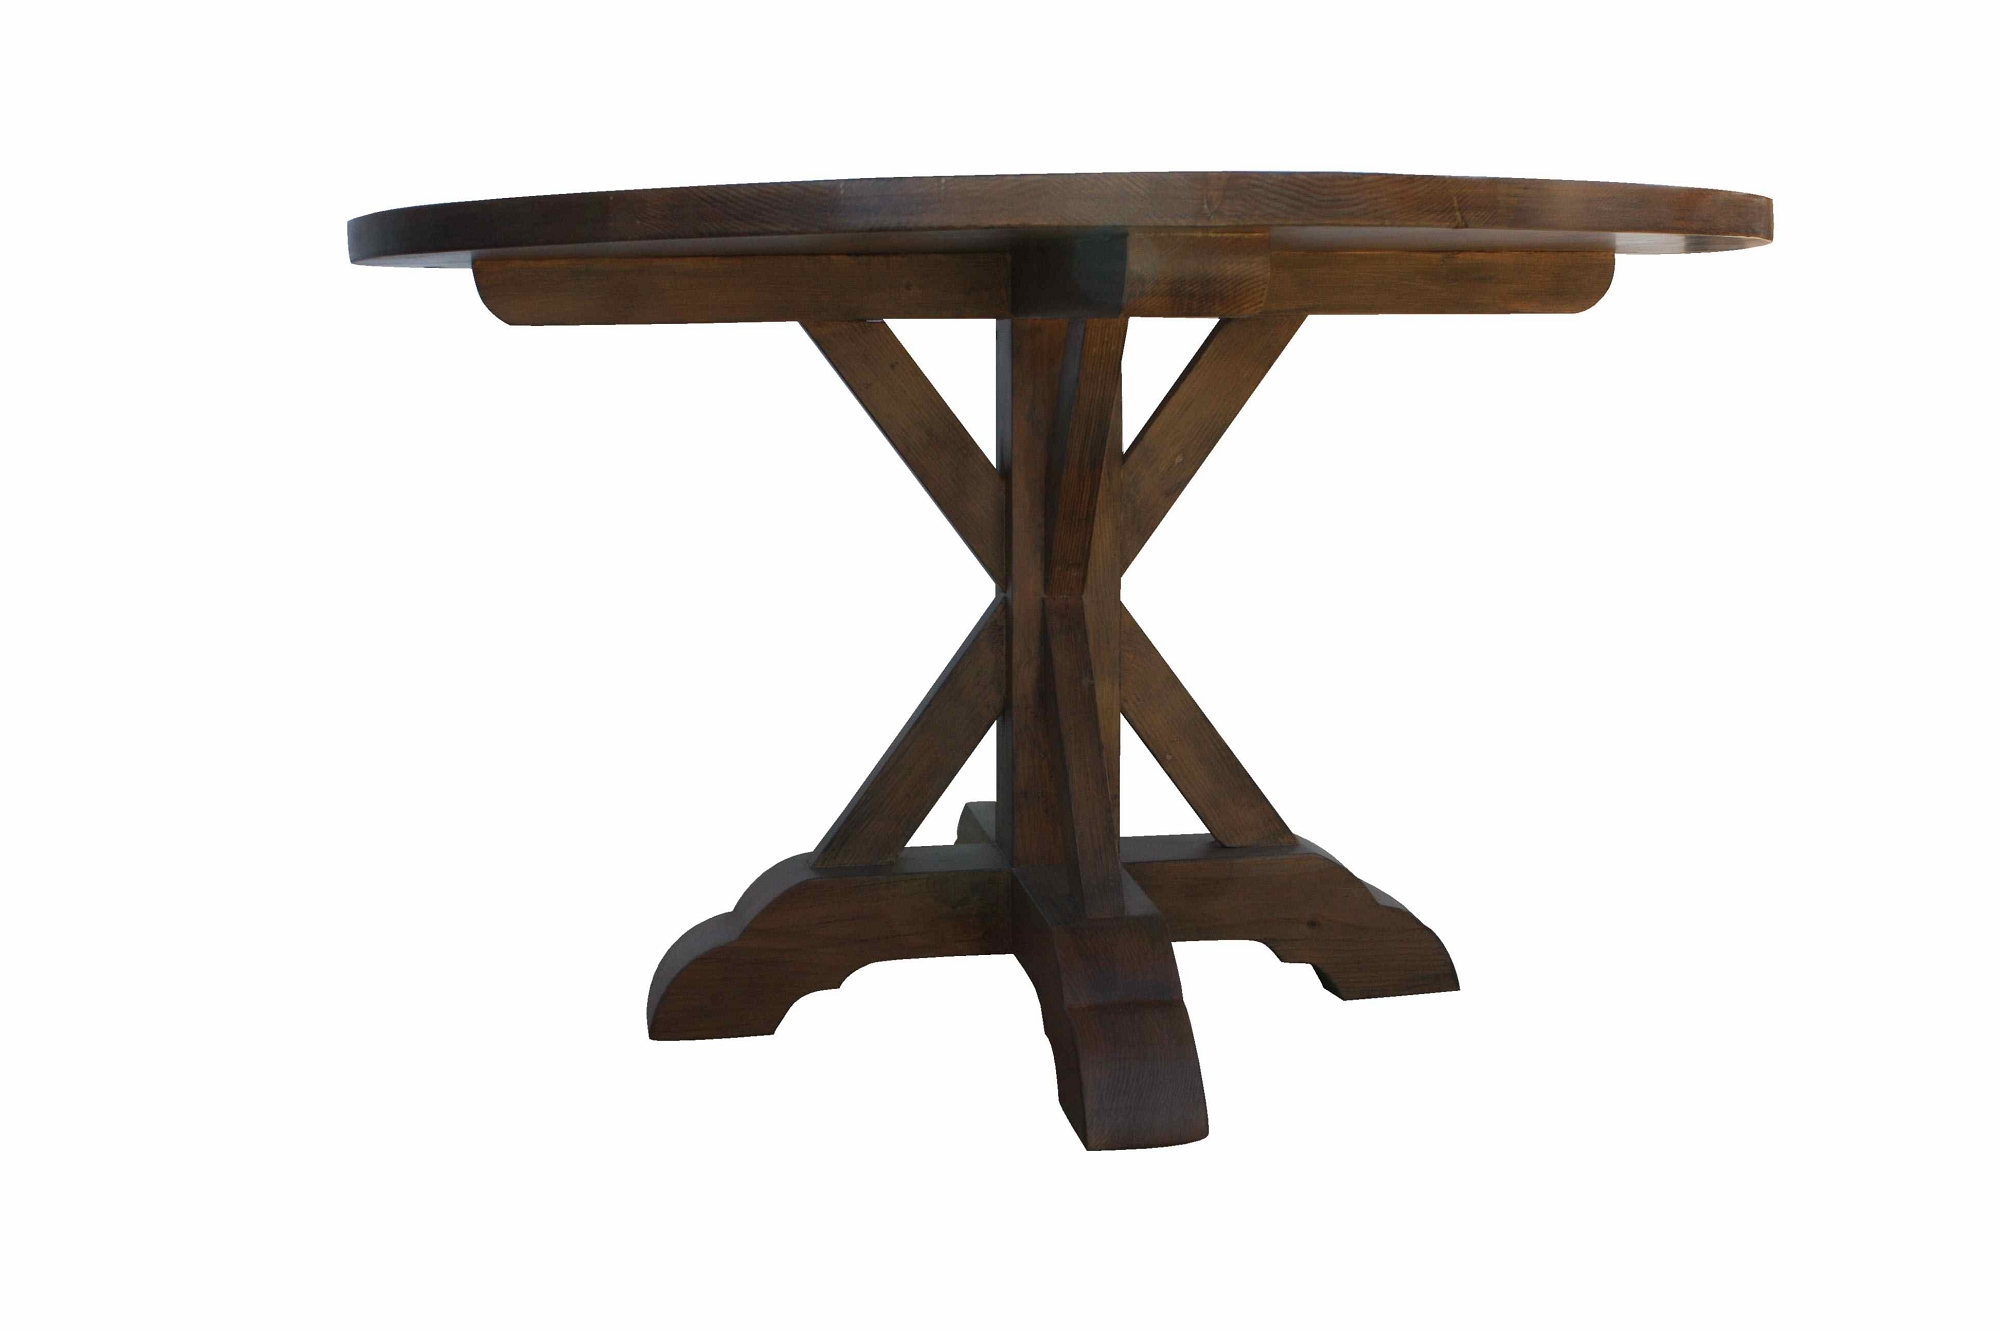 Marvellous pedestal dining table for dining room with round pedestal dining table